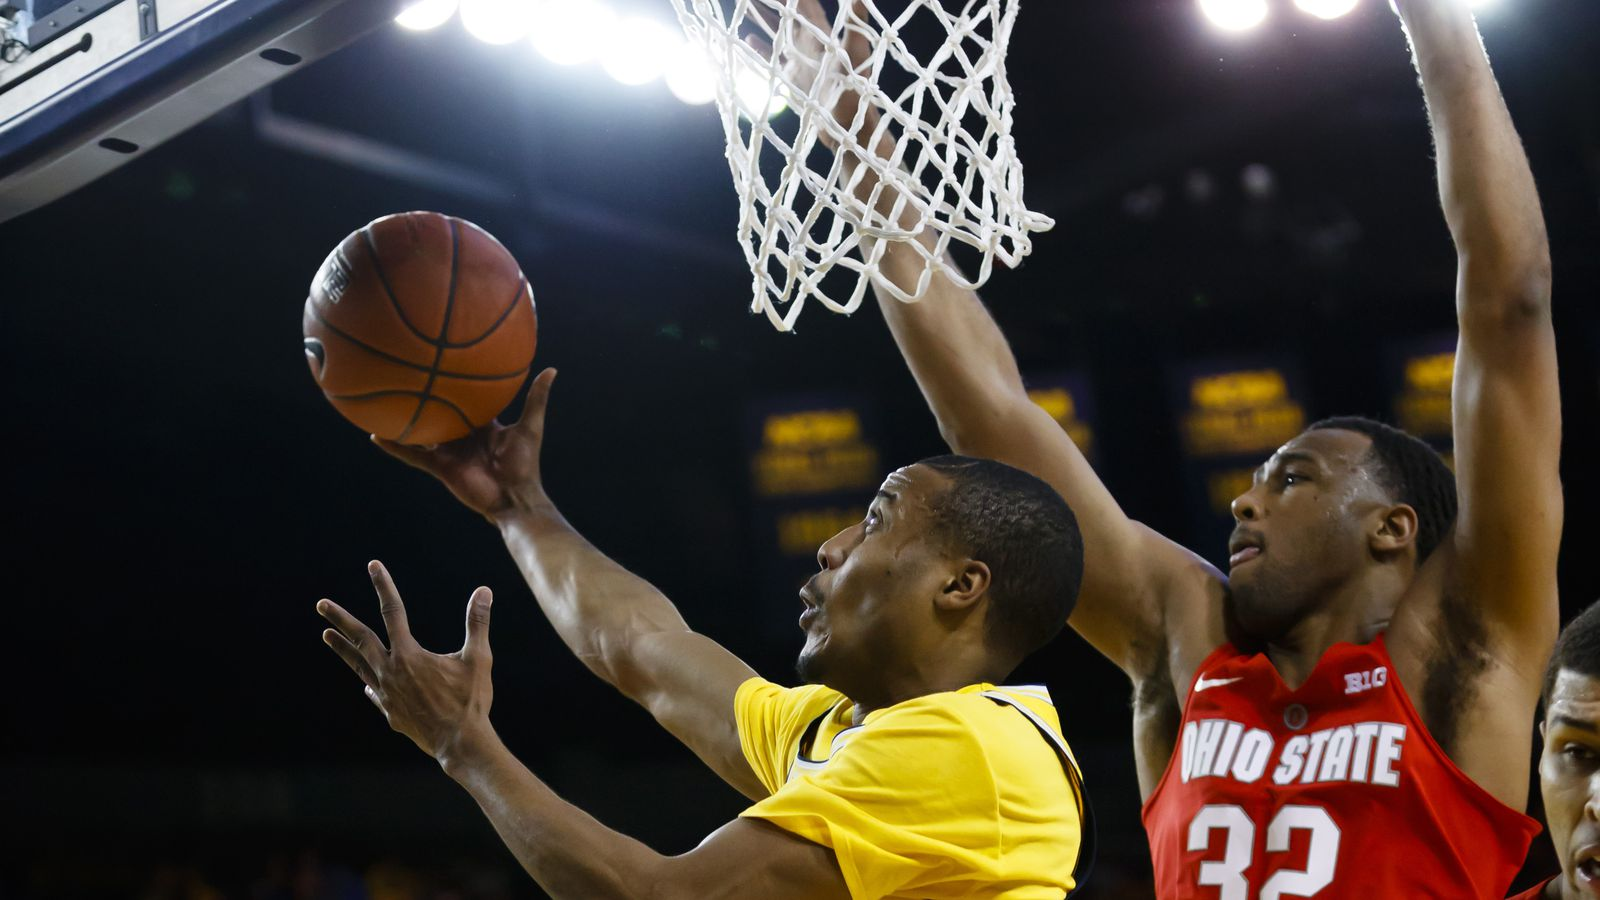 Ohio State vs. Michigan 2017 final score: Buckeyes hold off the Wolverines, 70-66 - Land-Grant ...